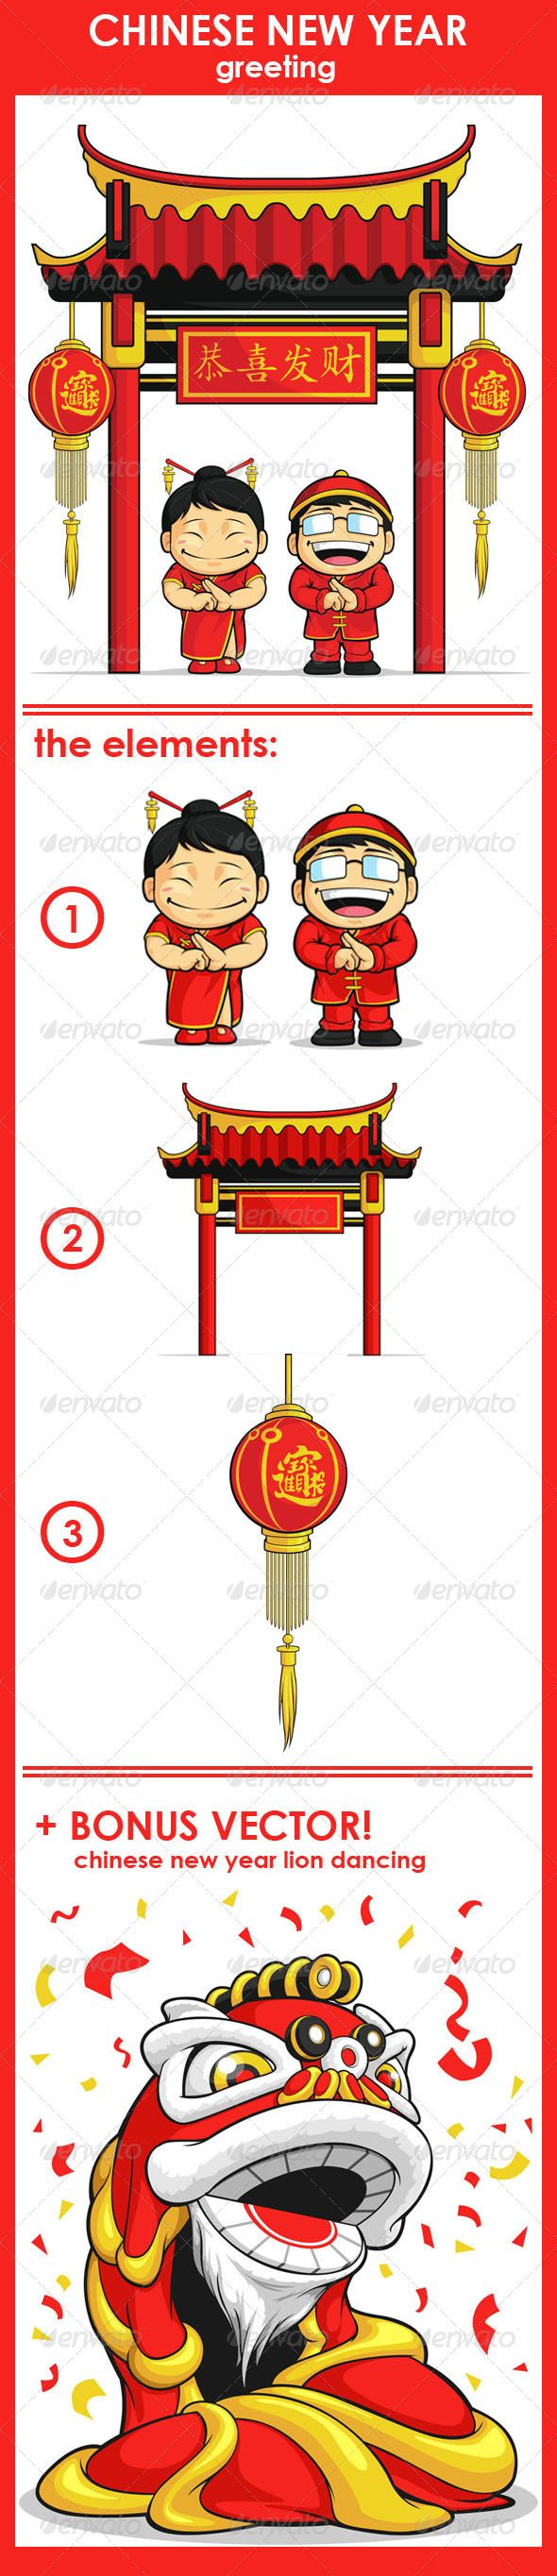 Chinese New Year Greeting By Bluezace A Vector Set Of Chinese Boy